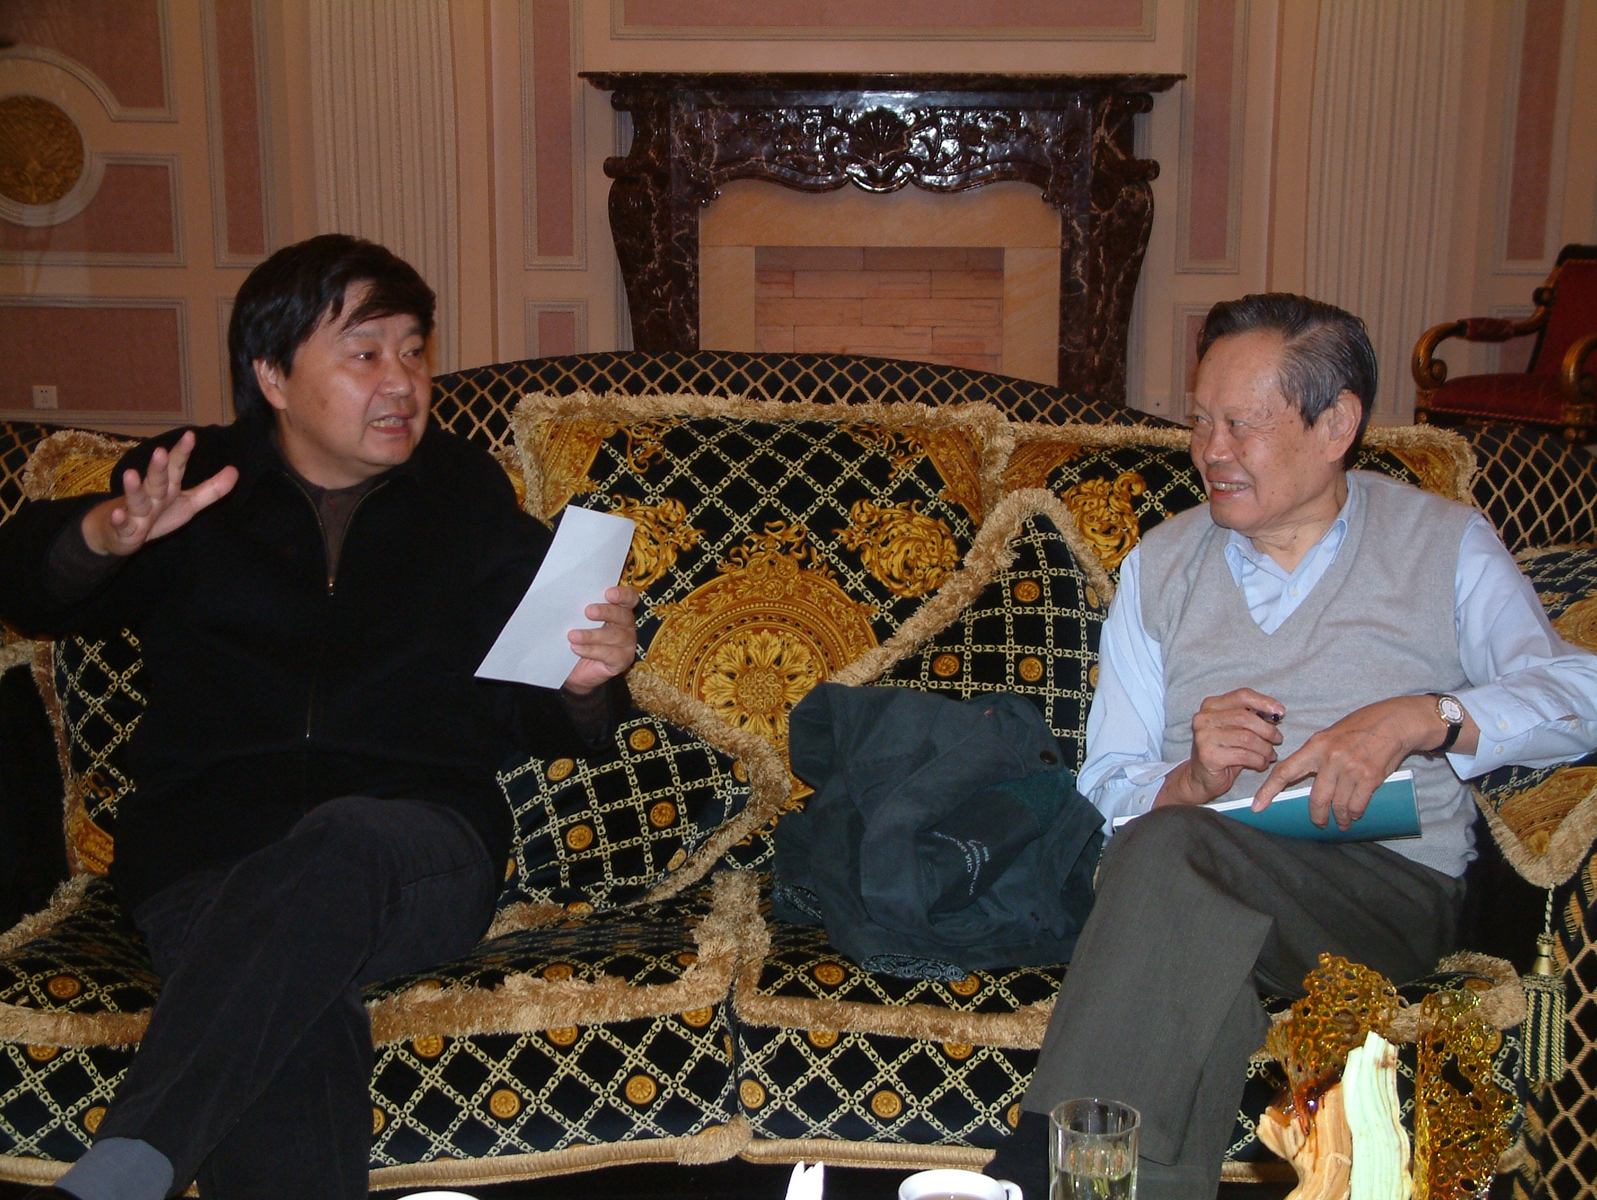 Mr. Yongyan Liu and Zhenning Yang discussing poetry